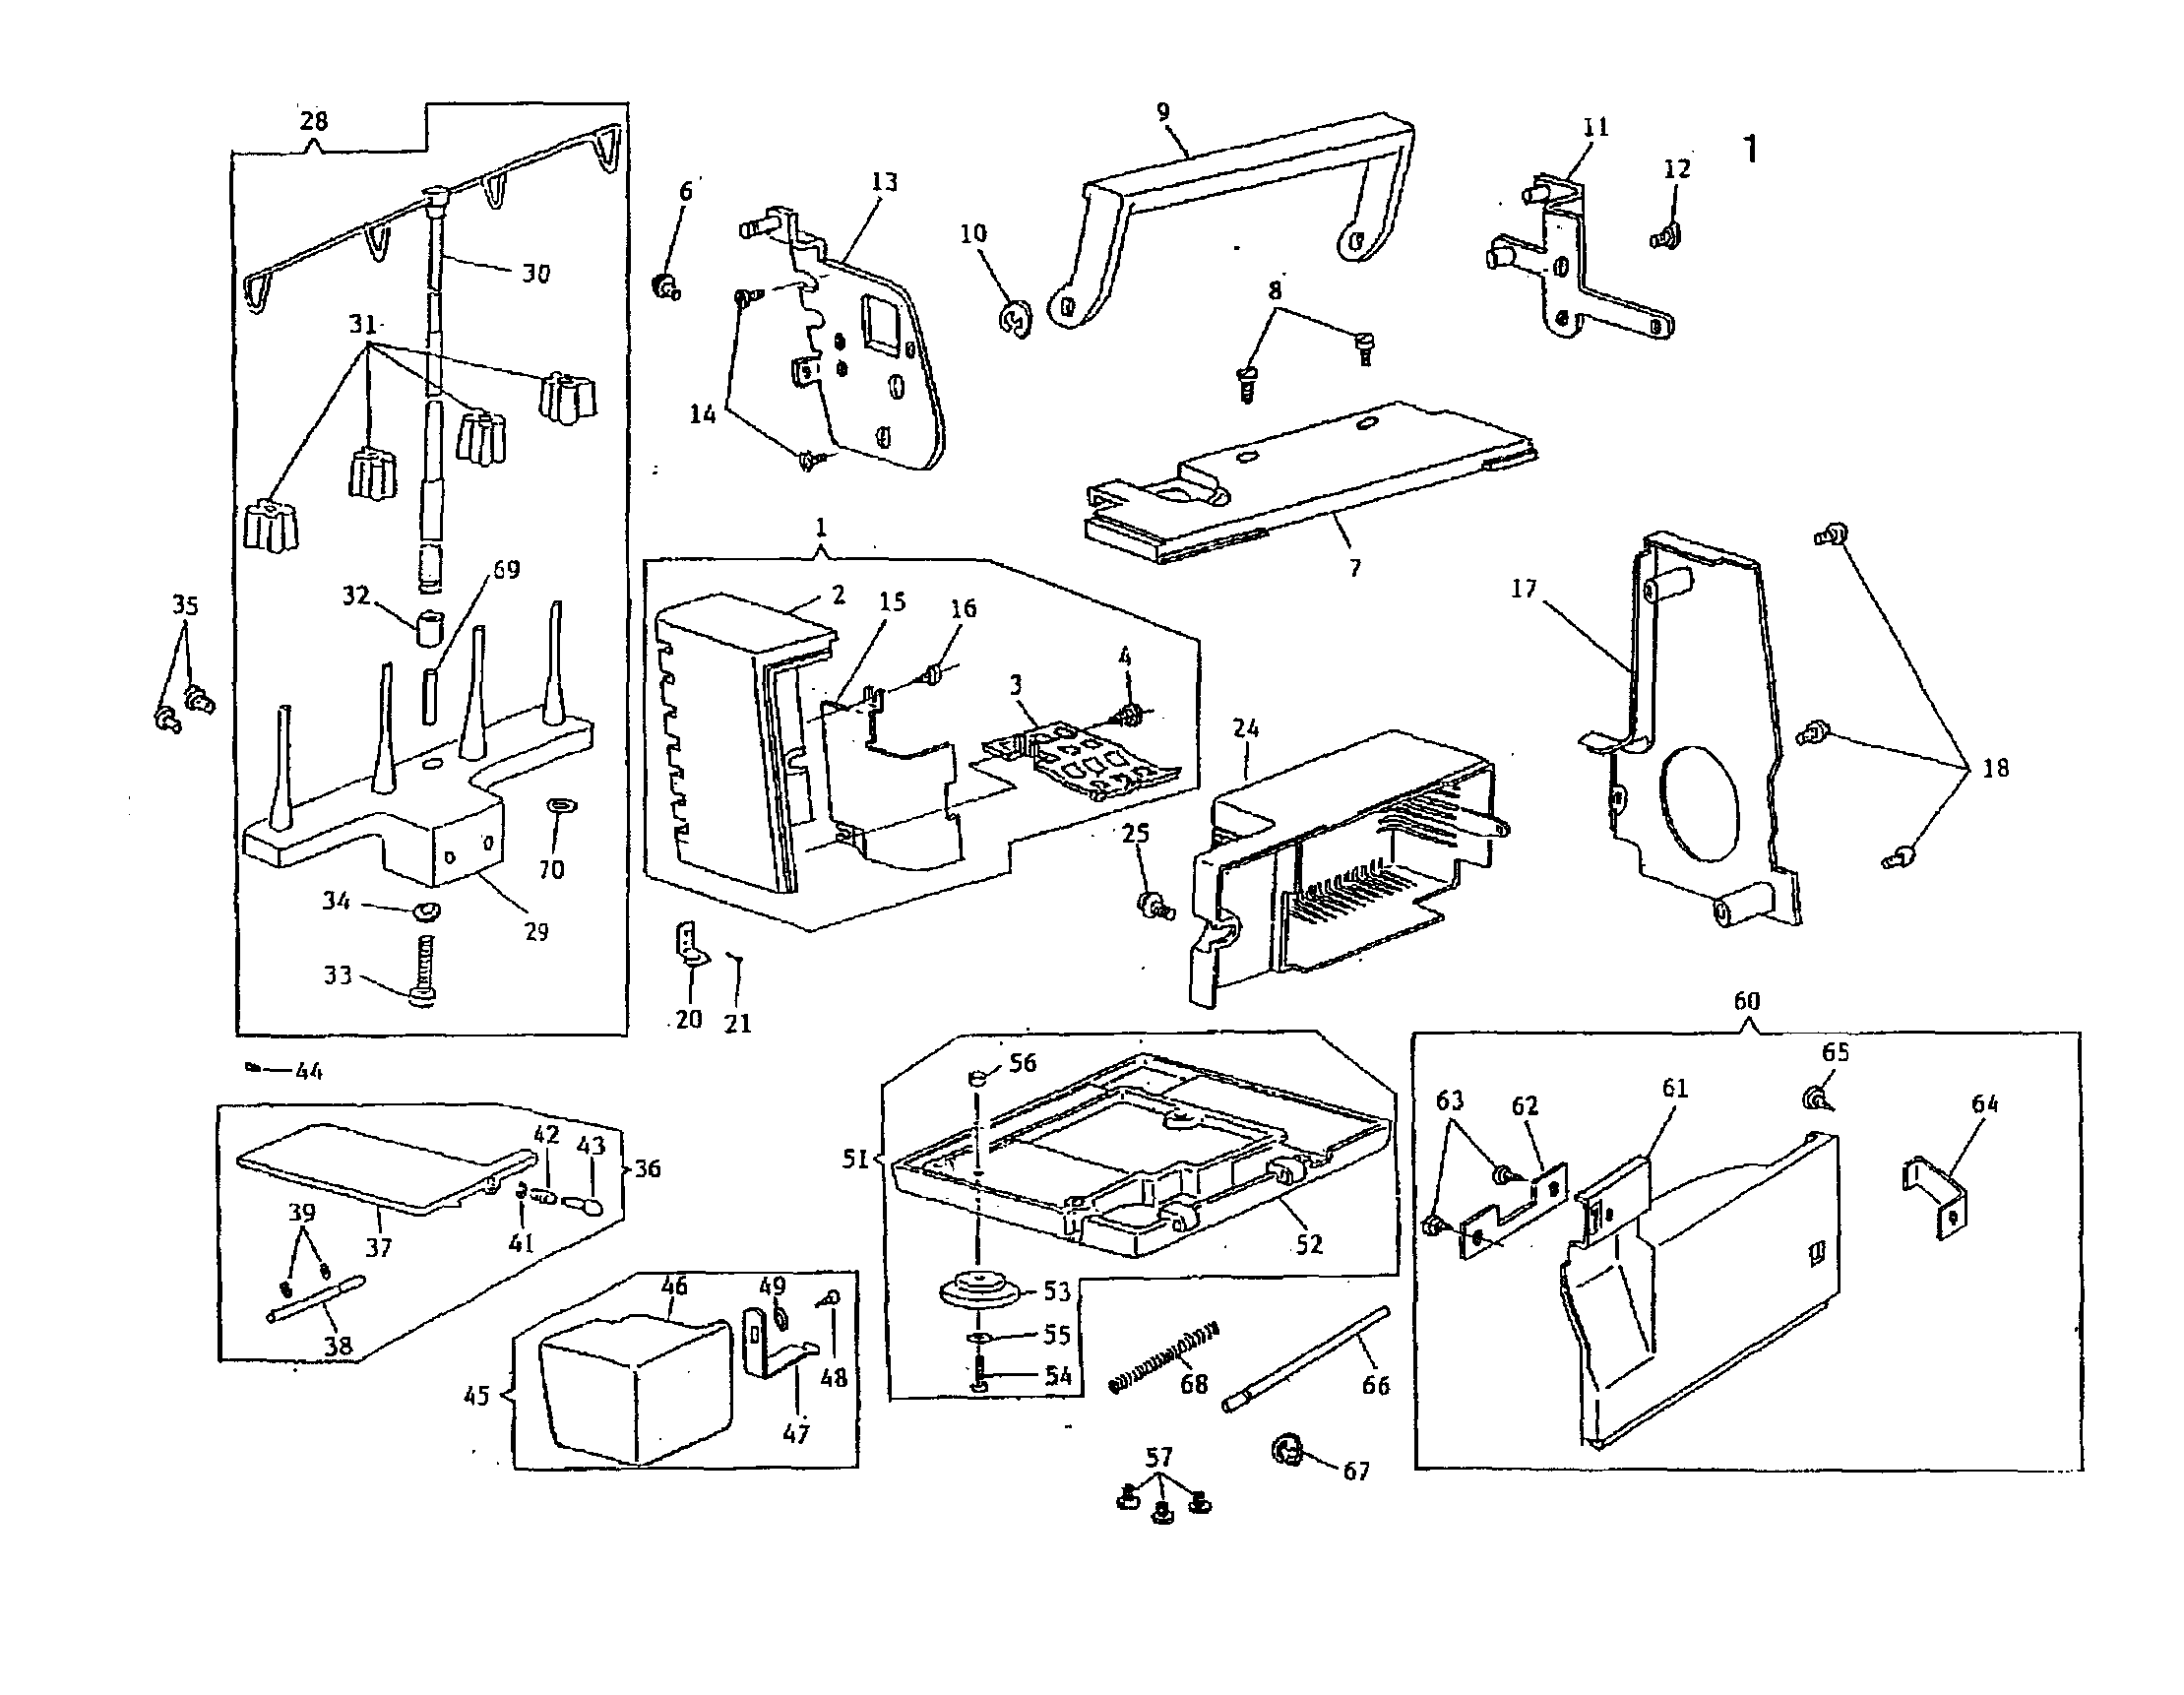 Washing Machine Parts Diagram